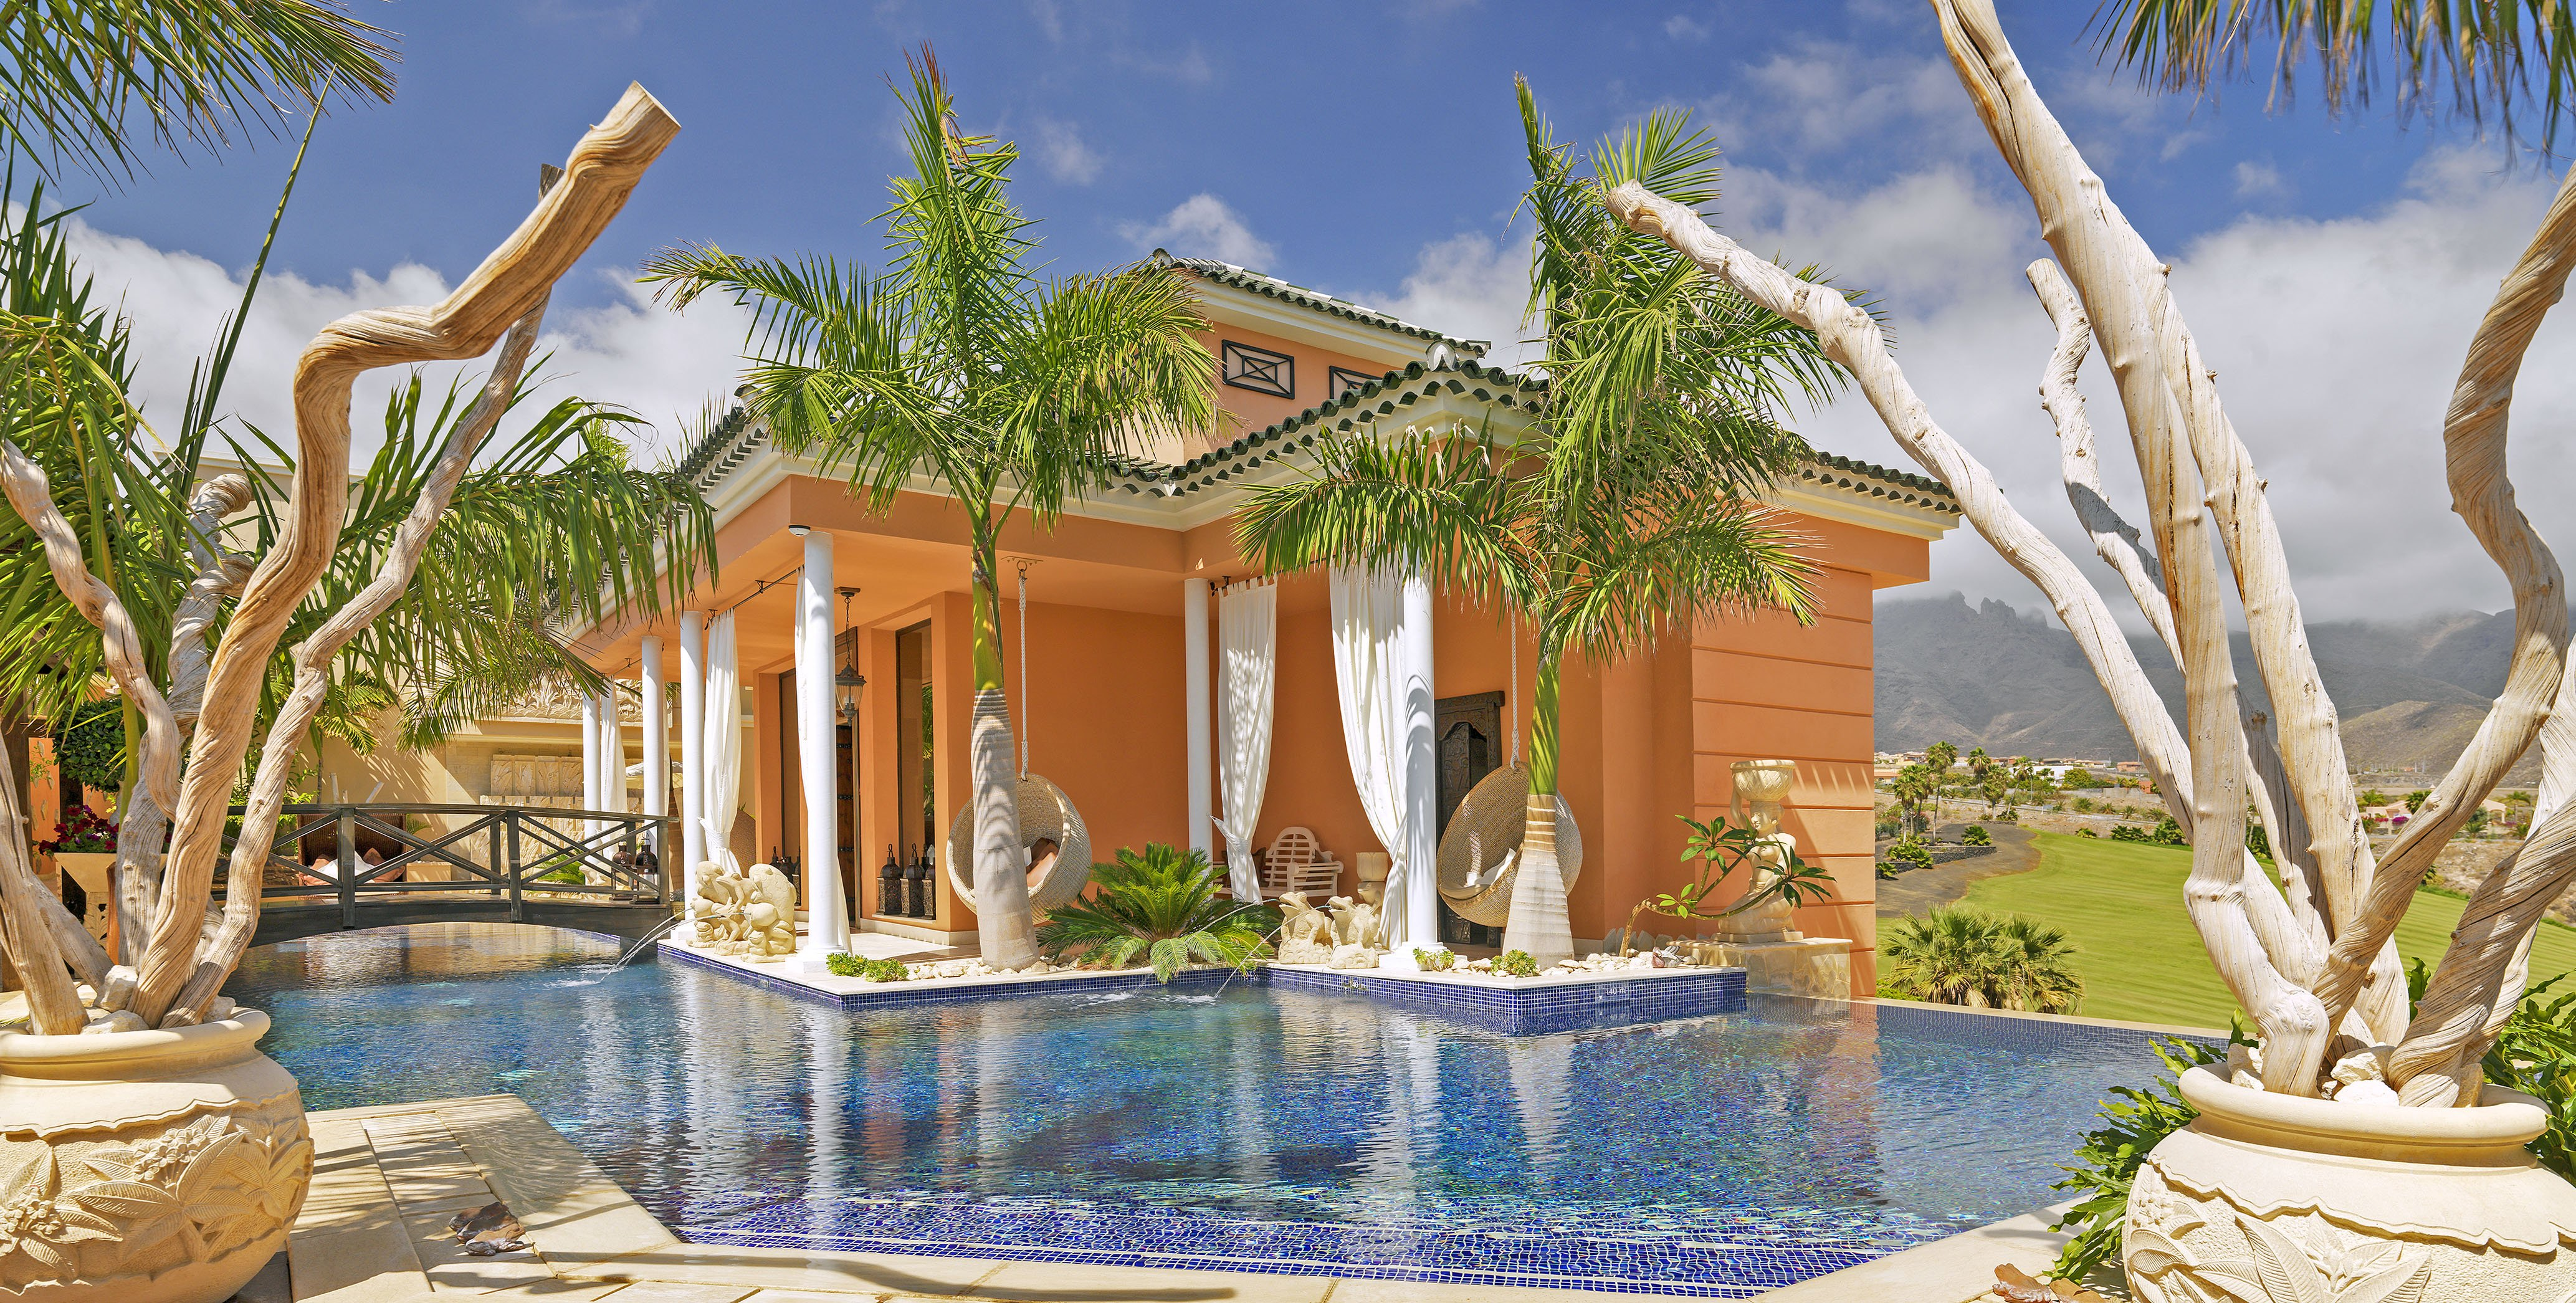 Villa to rent in Golf Costa Adeje, Tenerife with private pool | 203101